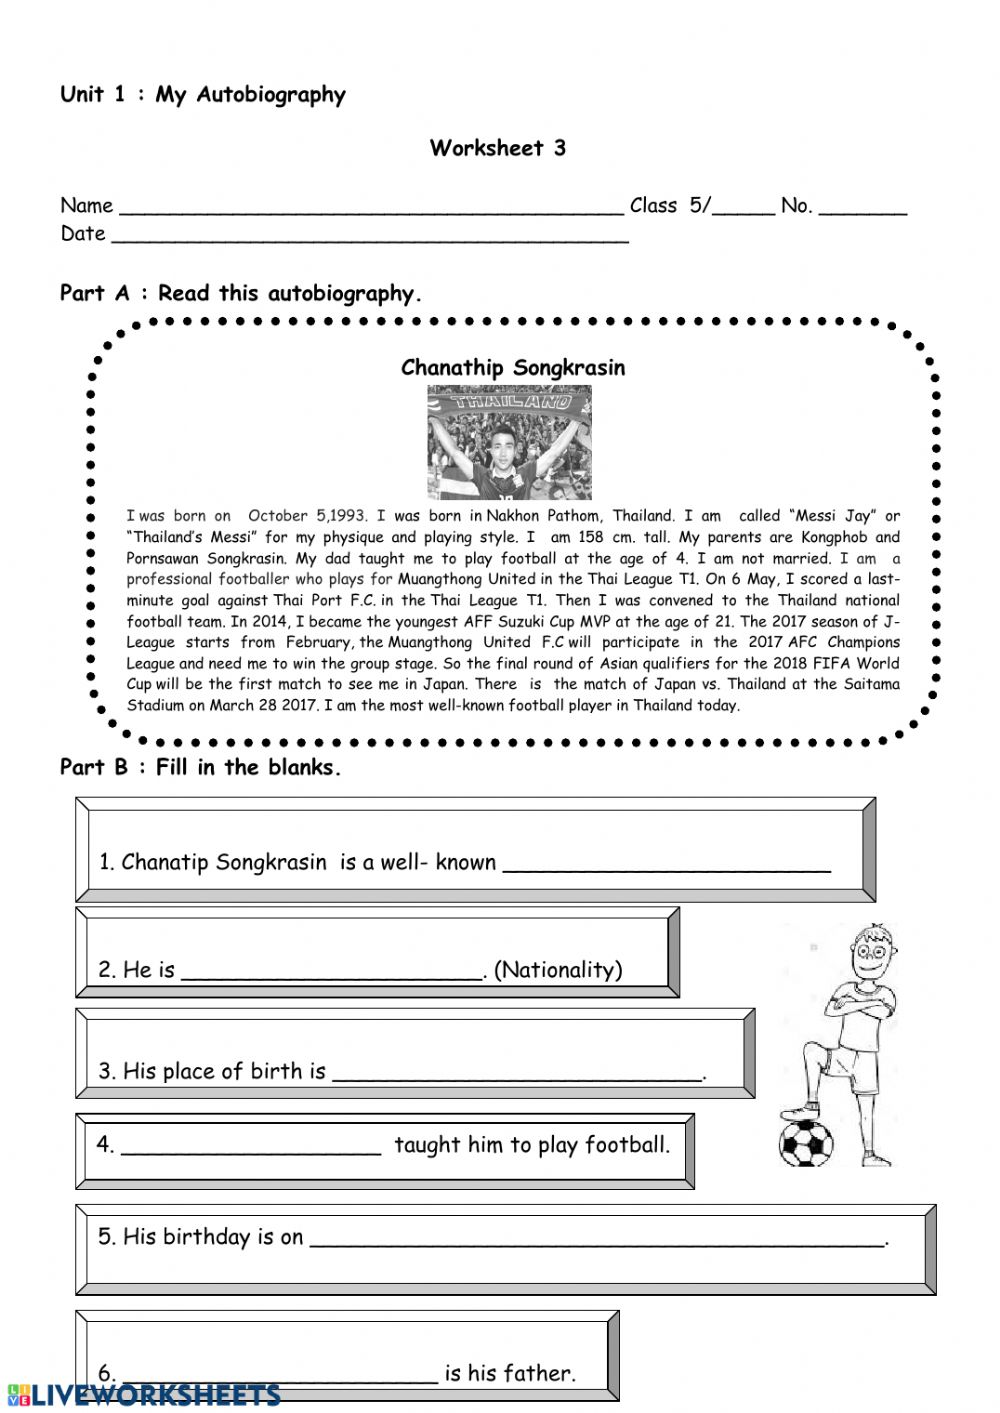 My Autobiography Interactive Worksheet